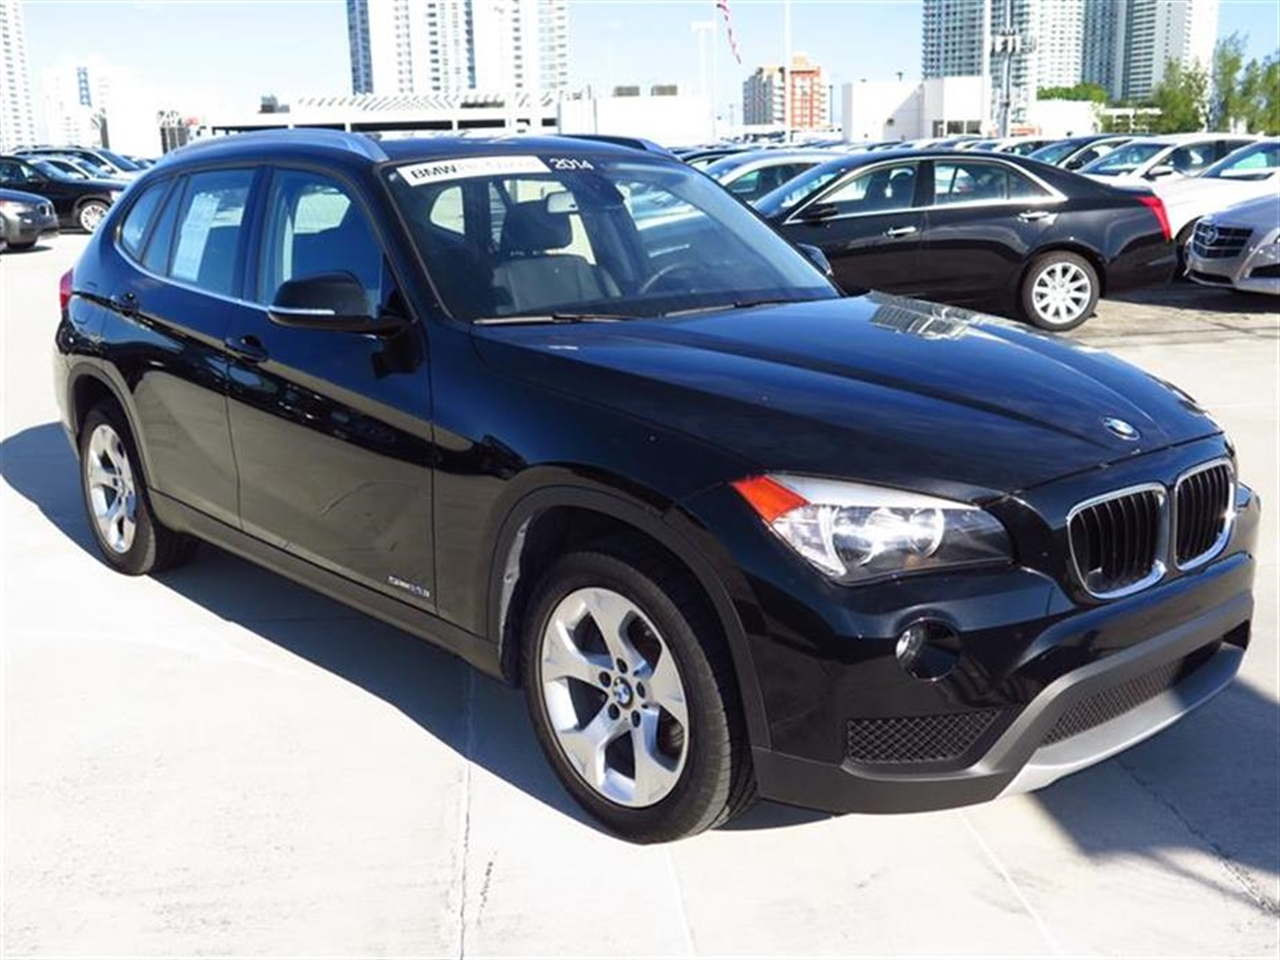 2014 BMW X1 RWD 4dr sDrive28i 11215 miles 2 Seatback Storage Pockets 3 12V DC Power Outlets LEA